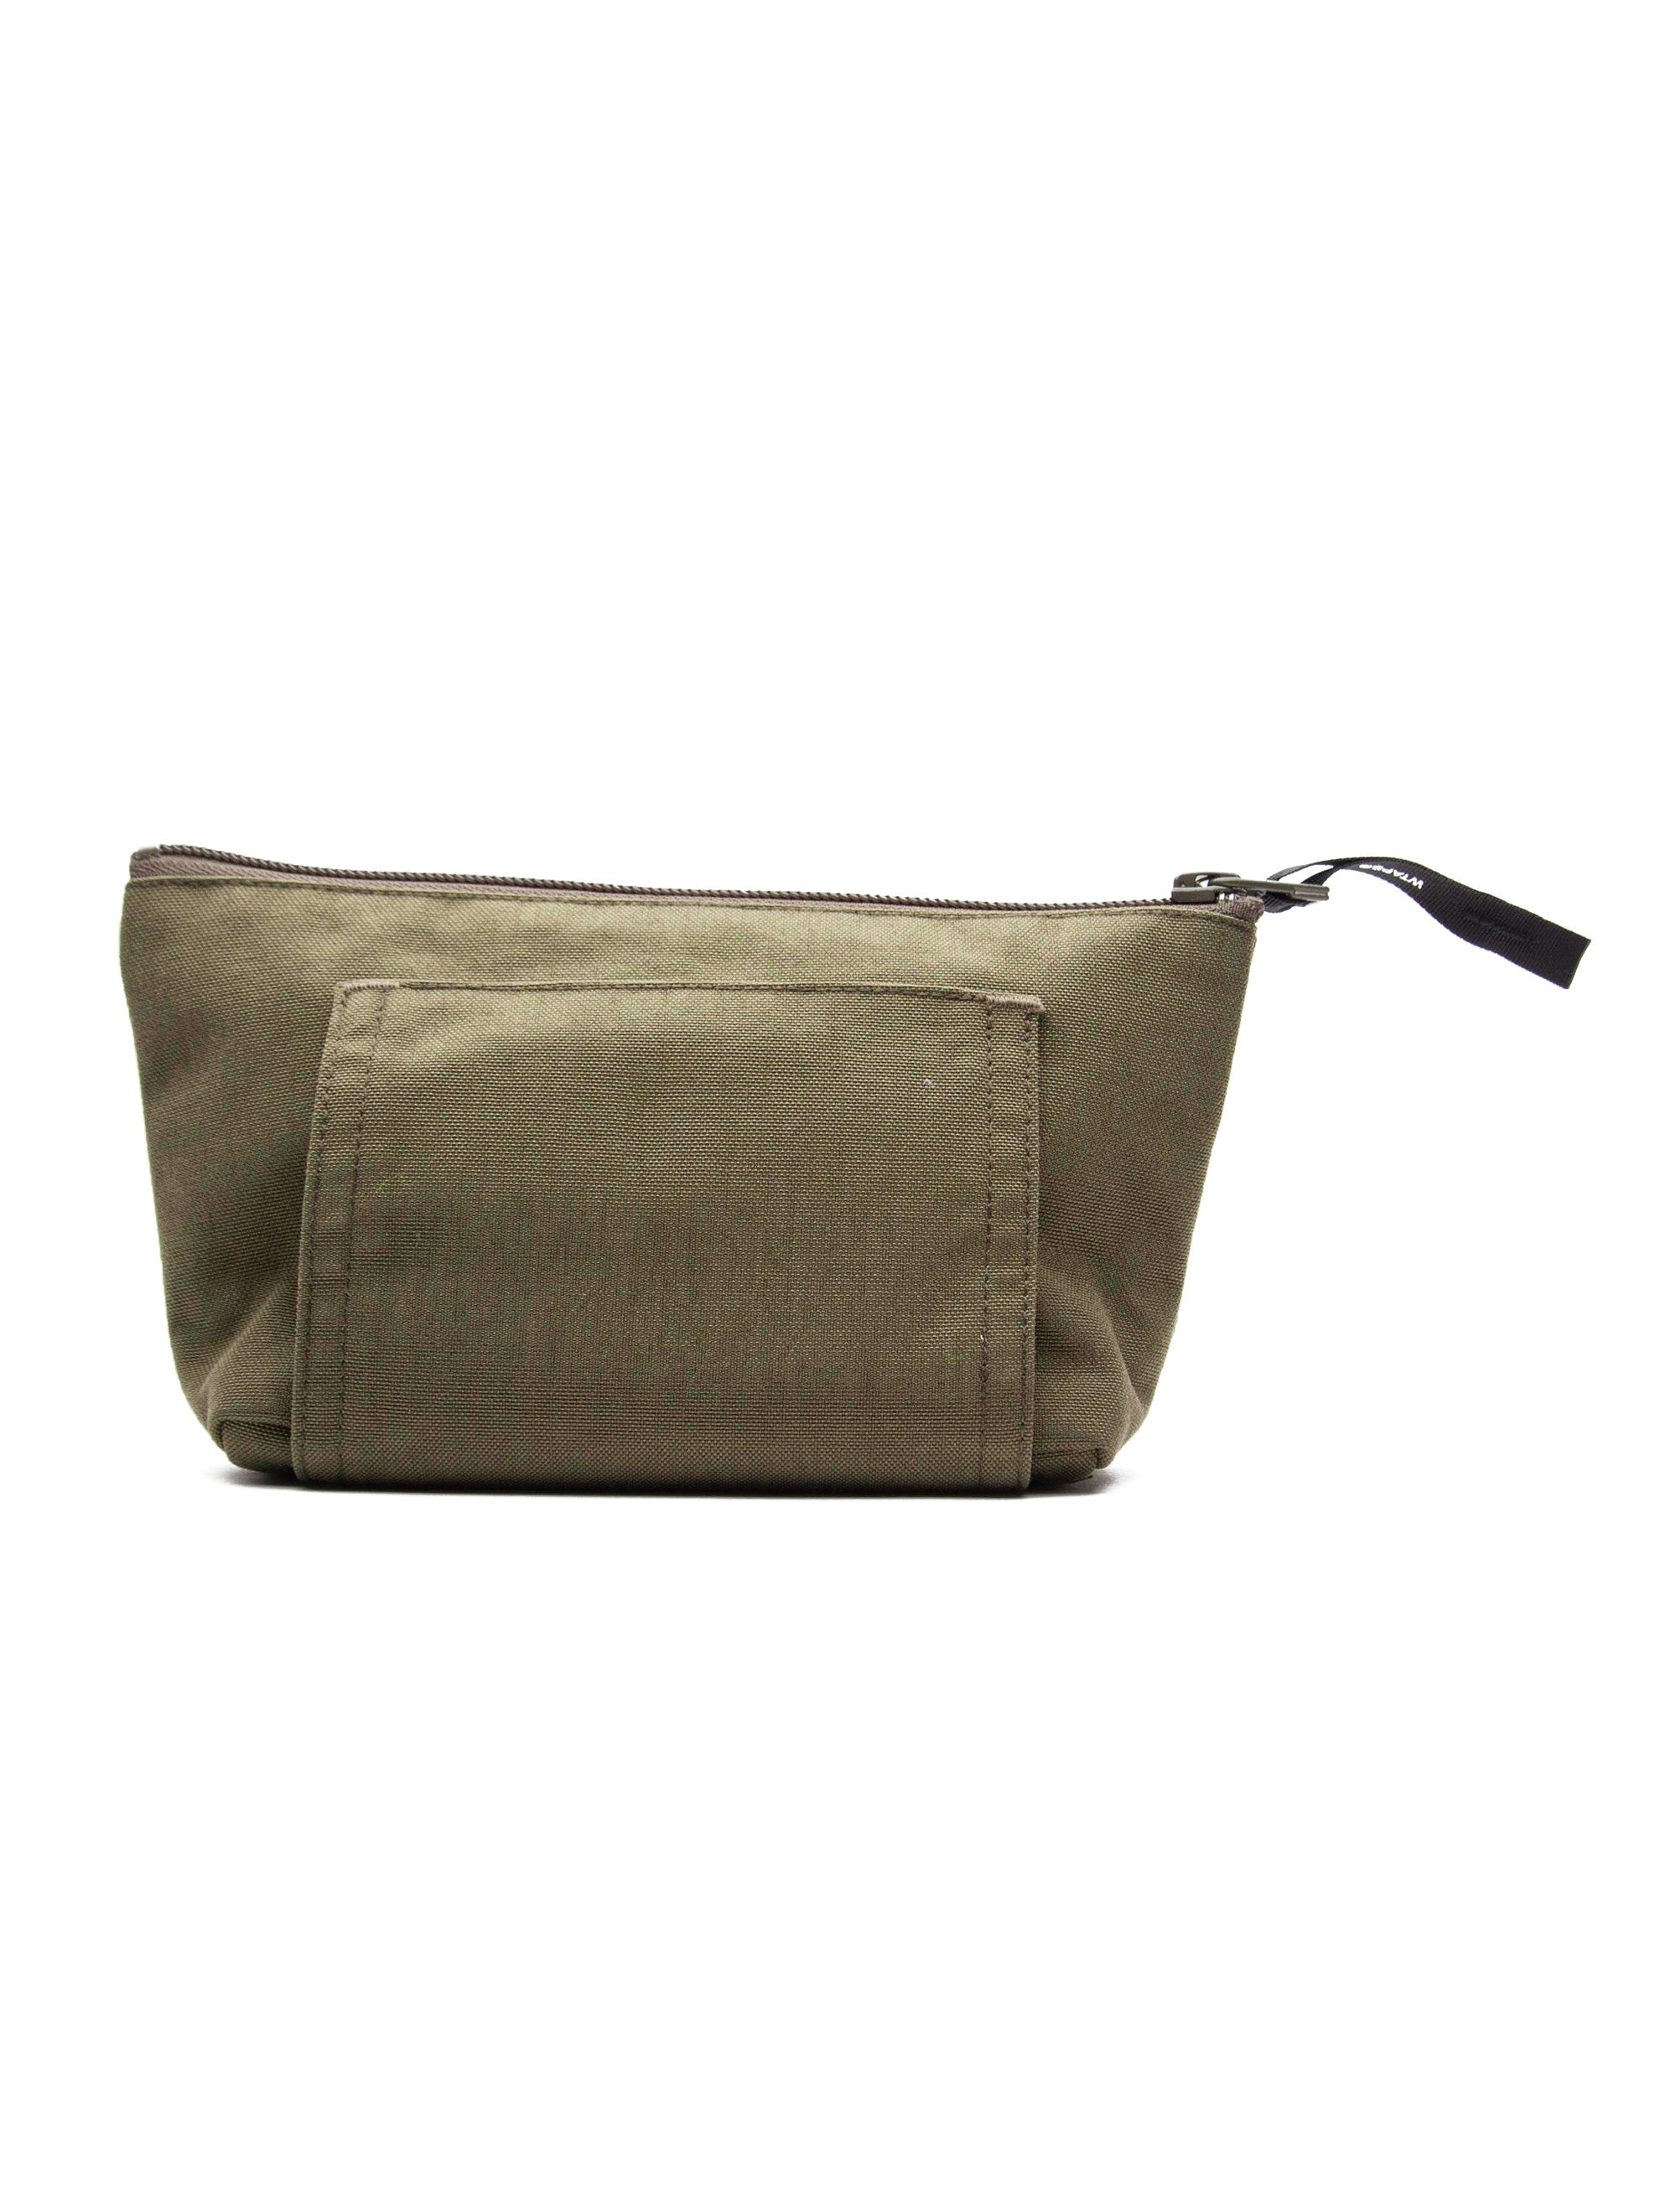 Mag M Bag (Nylon Cordura)